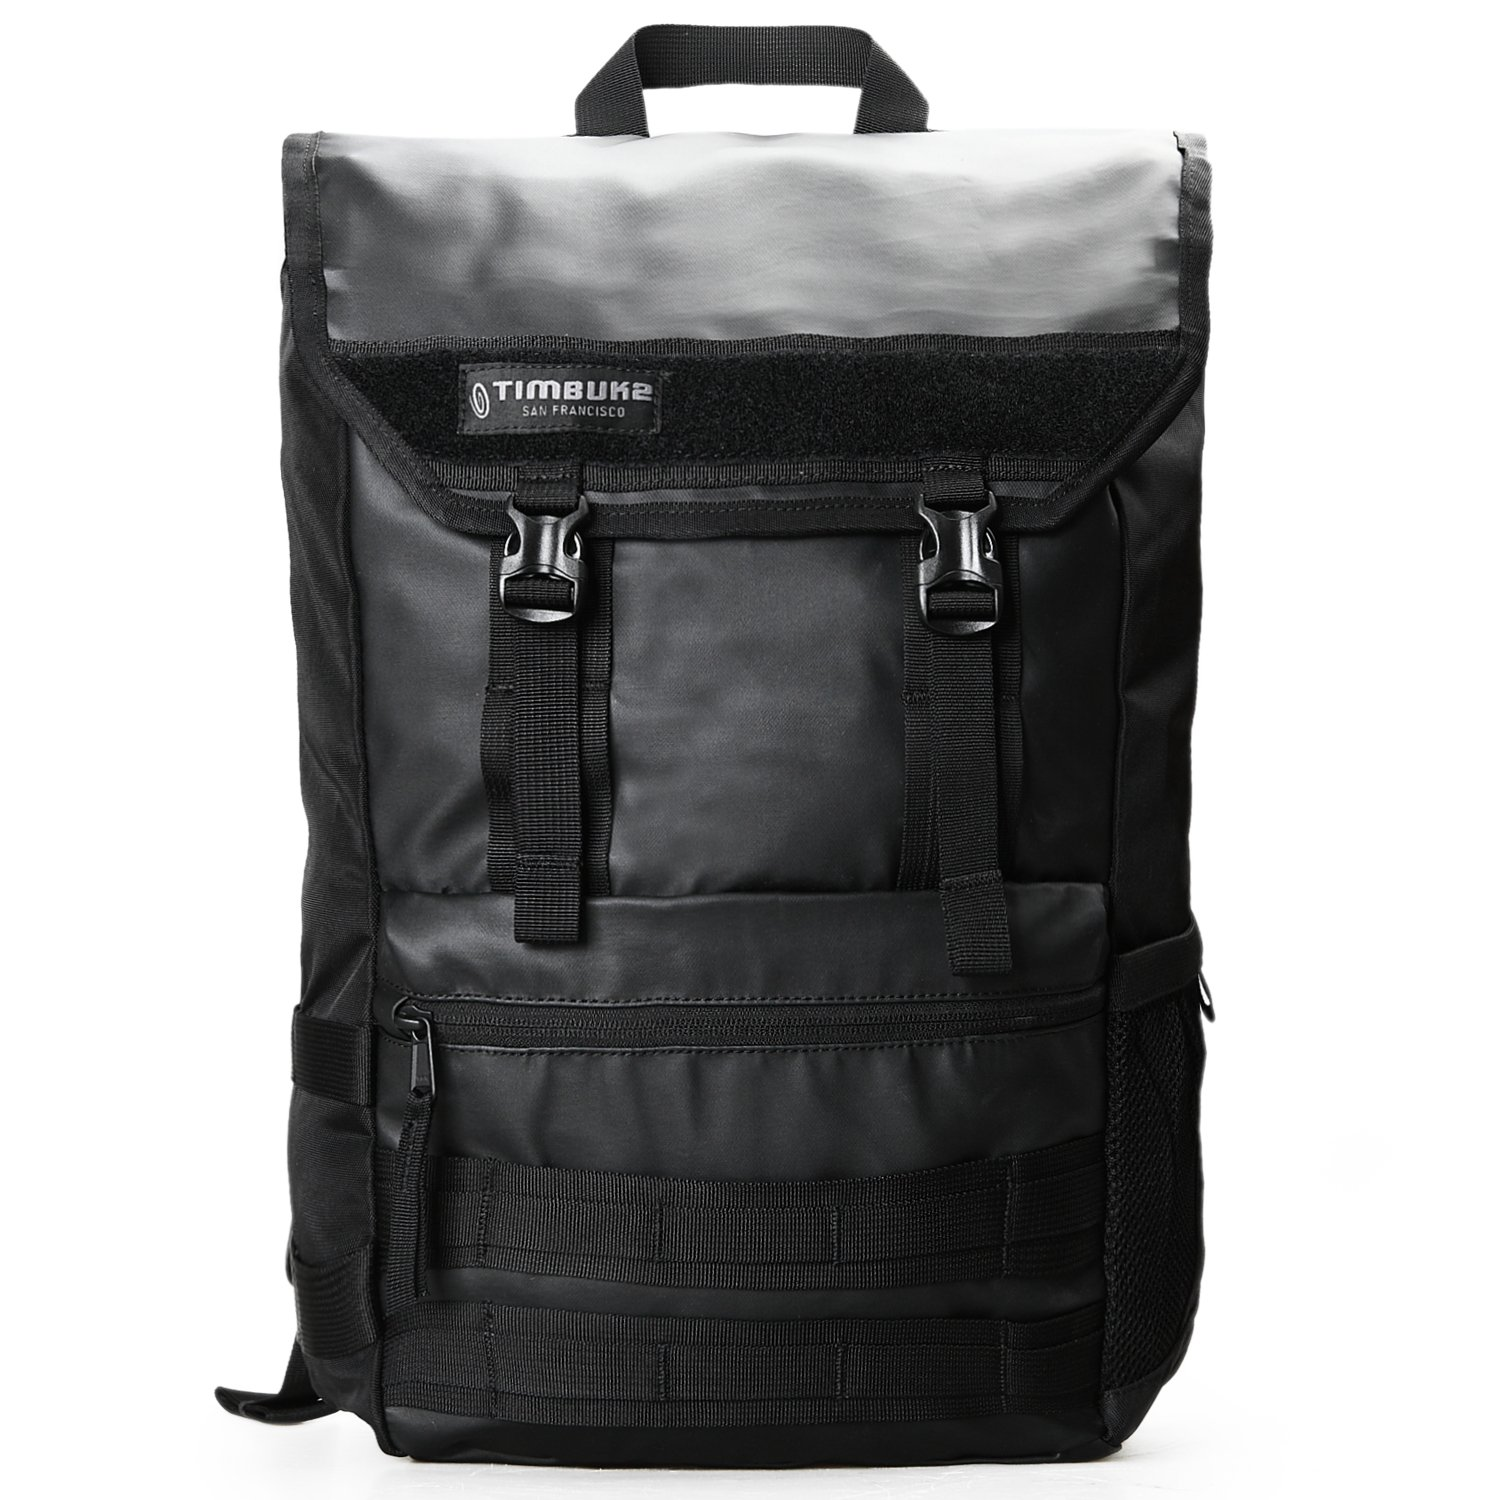 Timbuk2 Rogue Backpack, Black, One Size